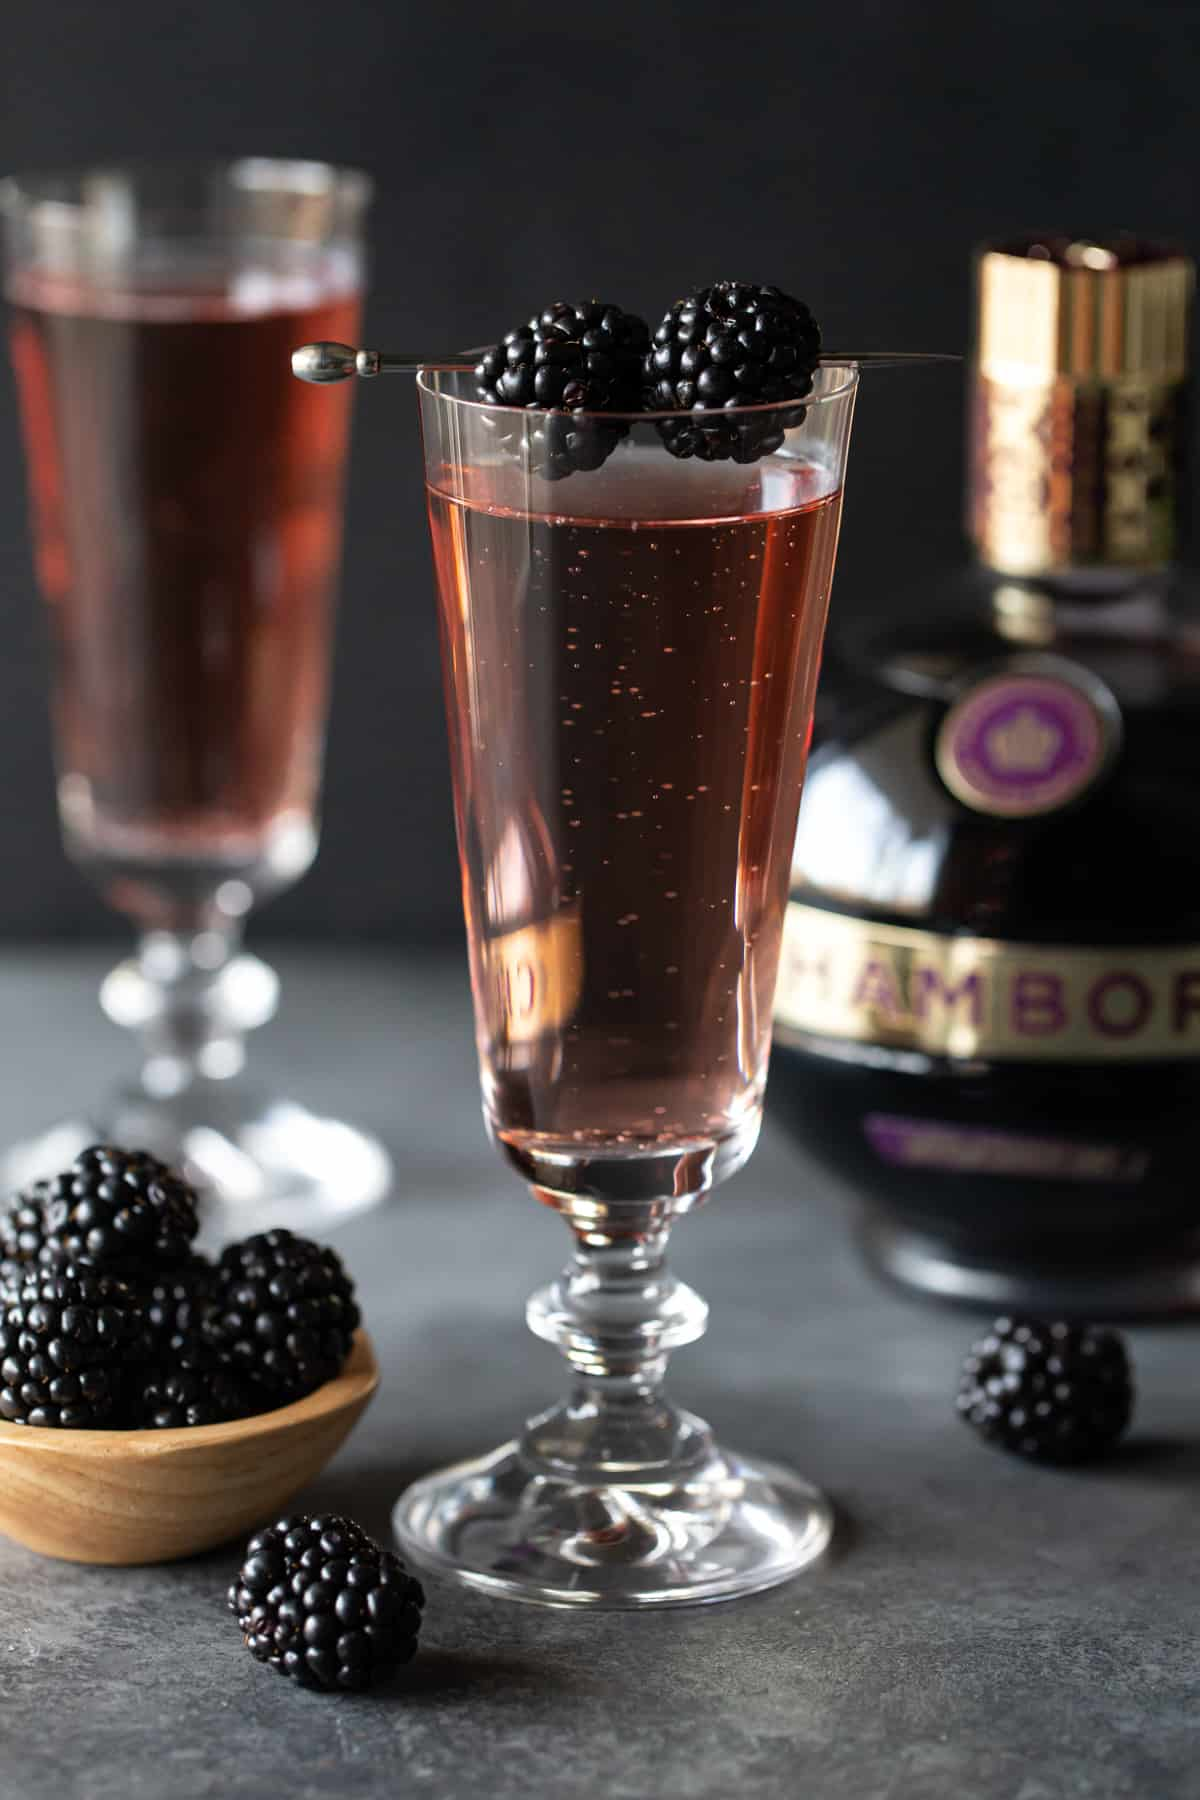 Drinks in footed glasses with blackberries.